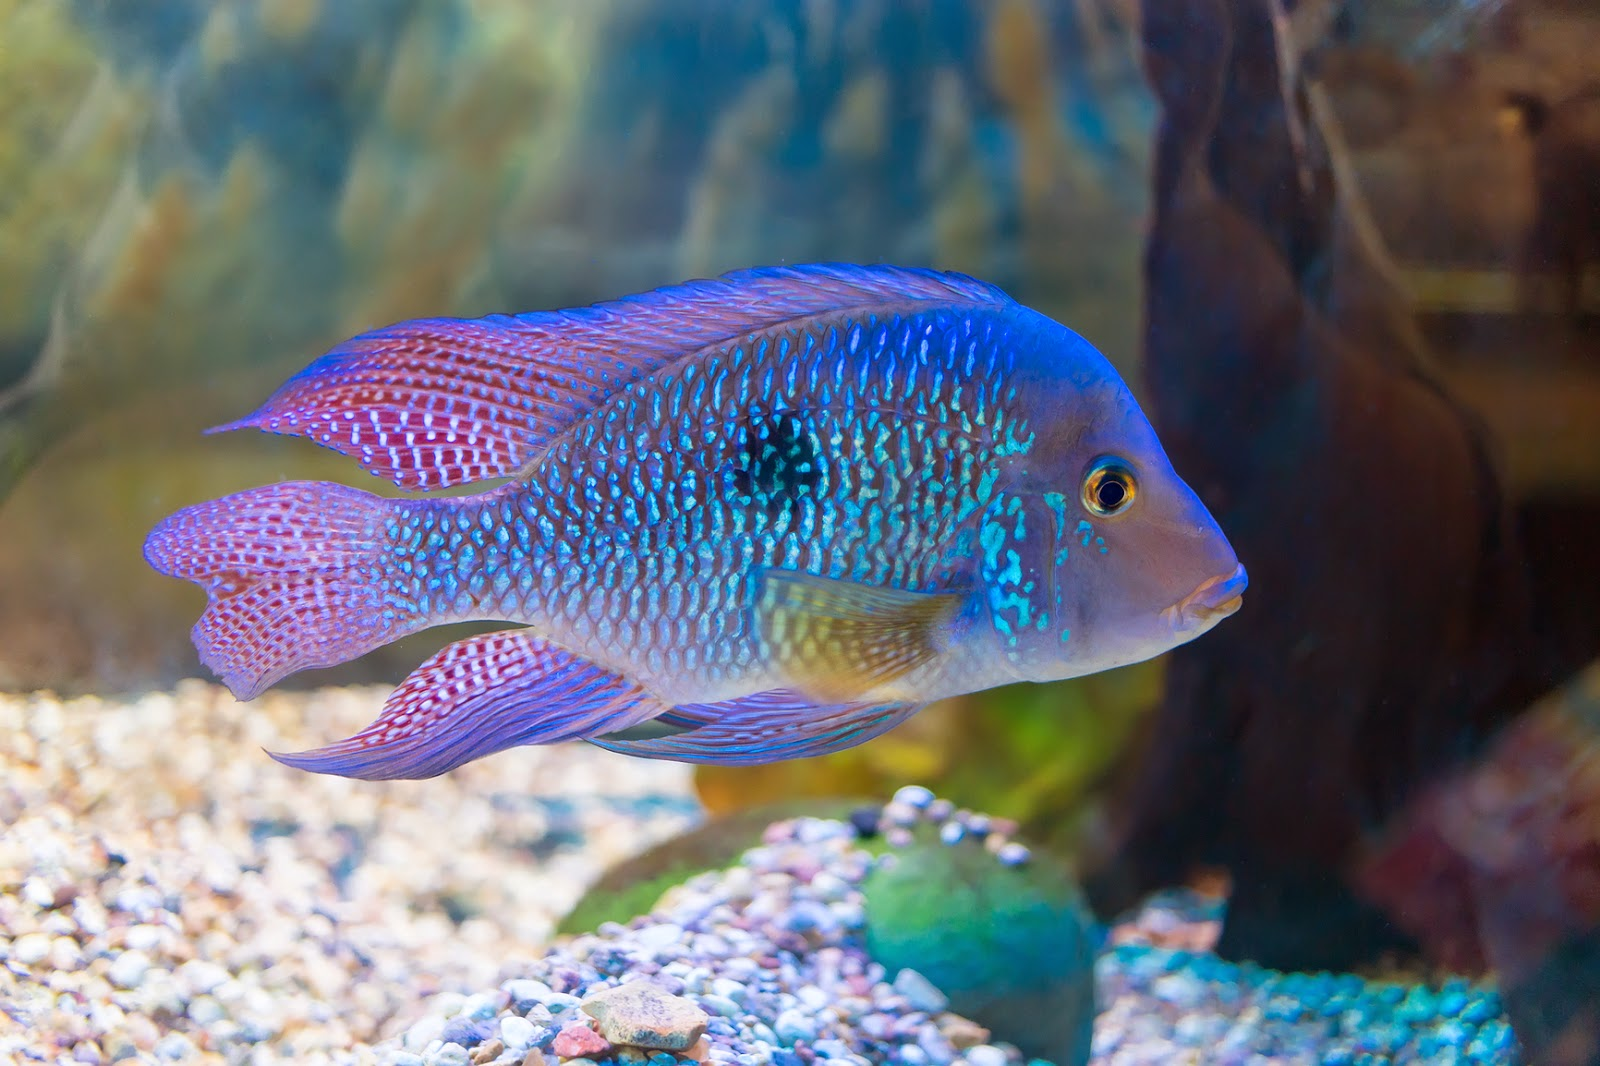 306174474647713217 together with Profile Jewelcichlid besides Frontosa furthermore Oscar likewise Top 50 Beautiful Fish Photos Images And Hd Wallpapers. on oscar fish keeping